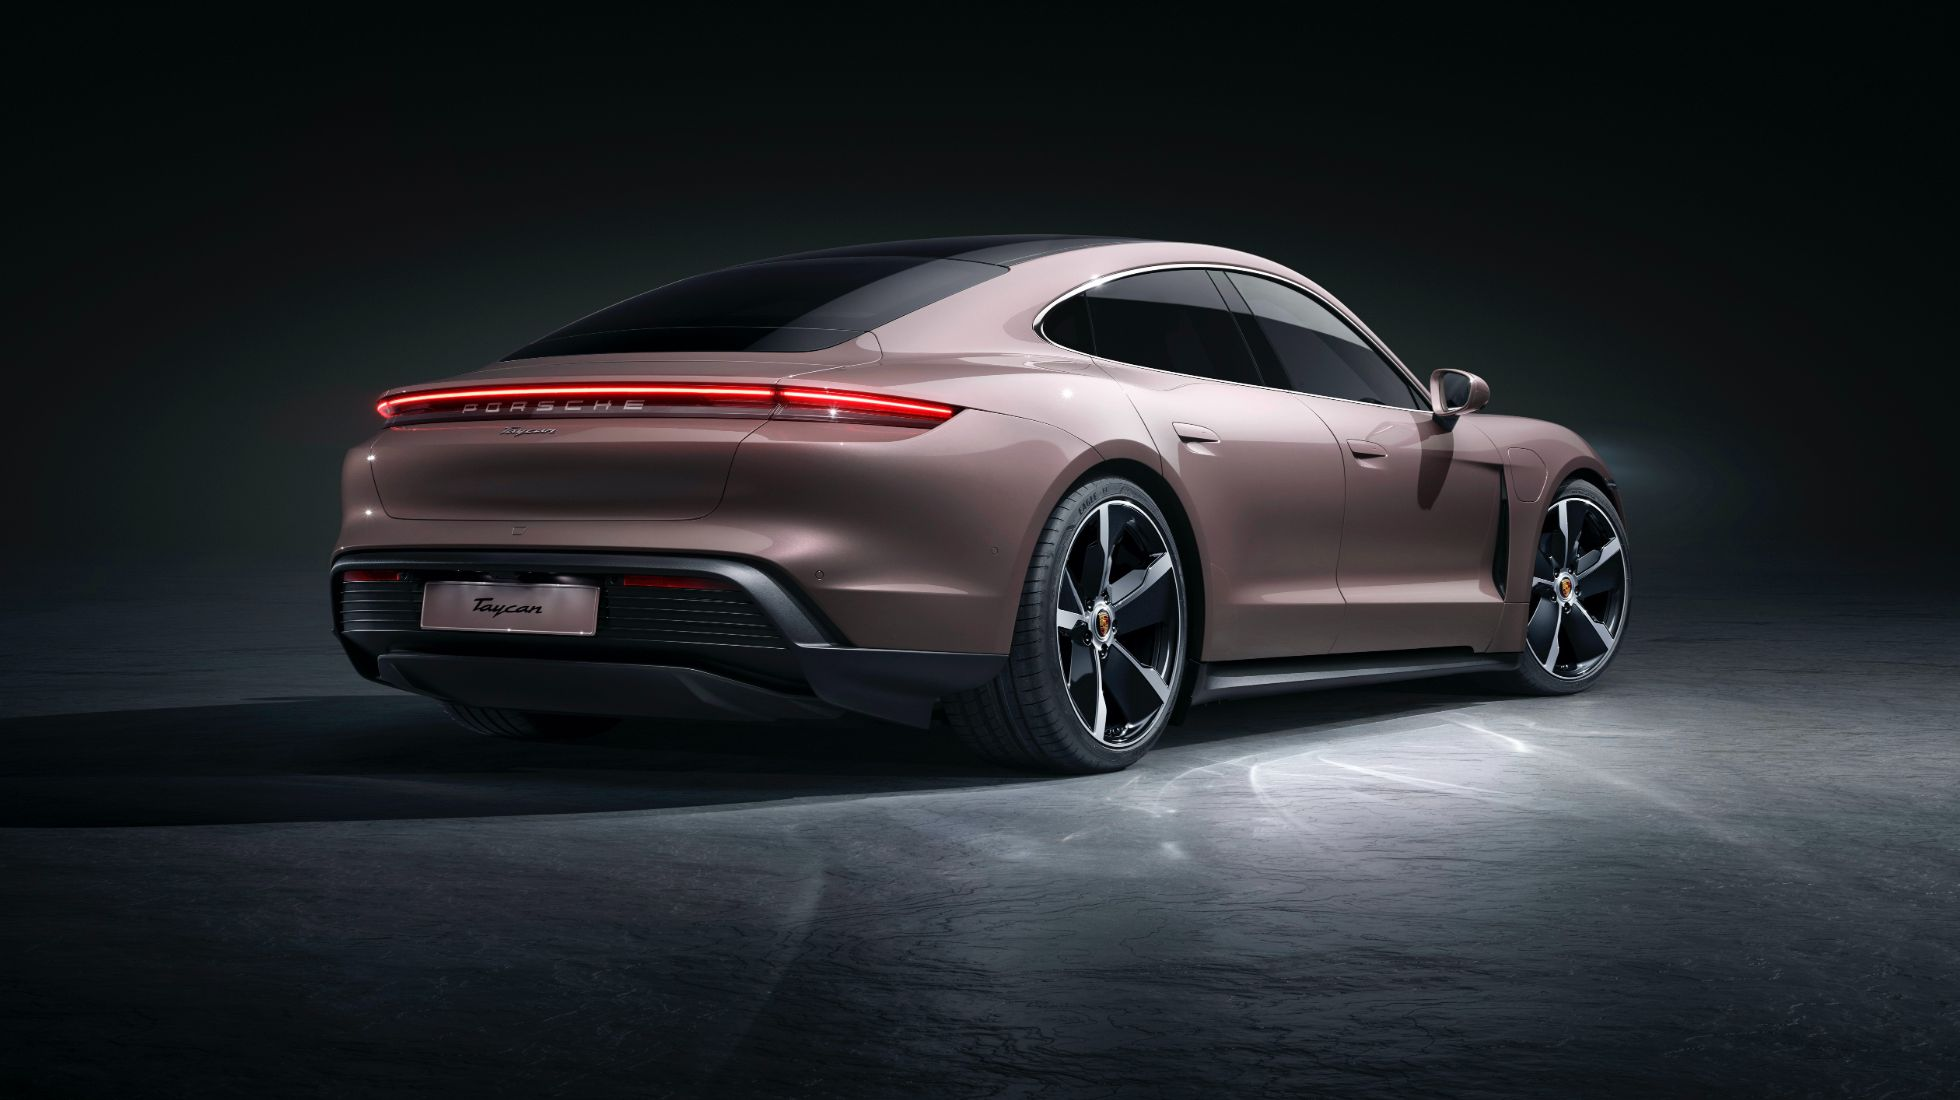 Porsche's Taycan EV model has been bolstered with a RWD version